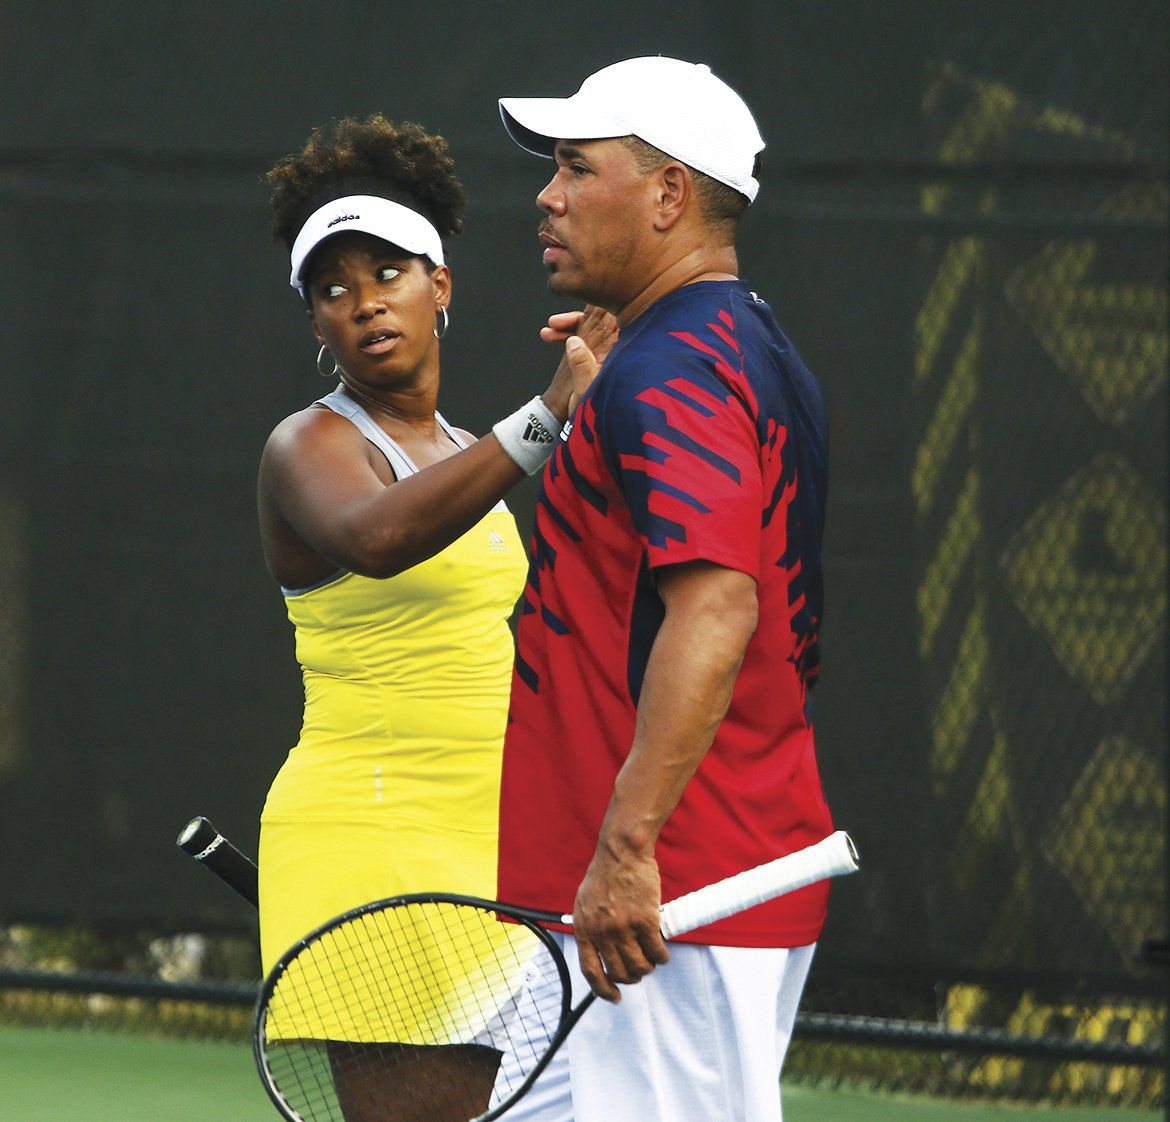 USTA Mixed Doubles State Championships return to Valdosta